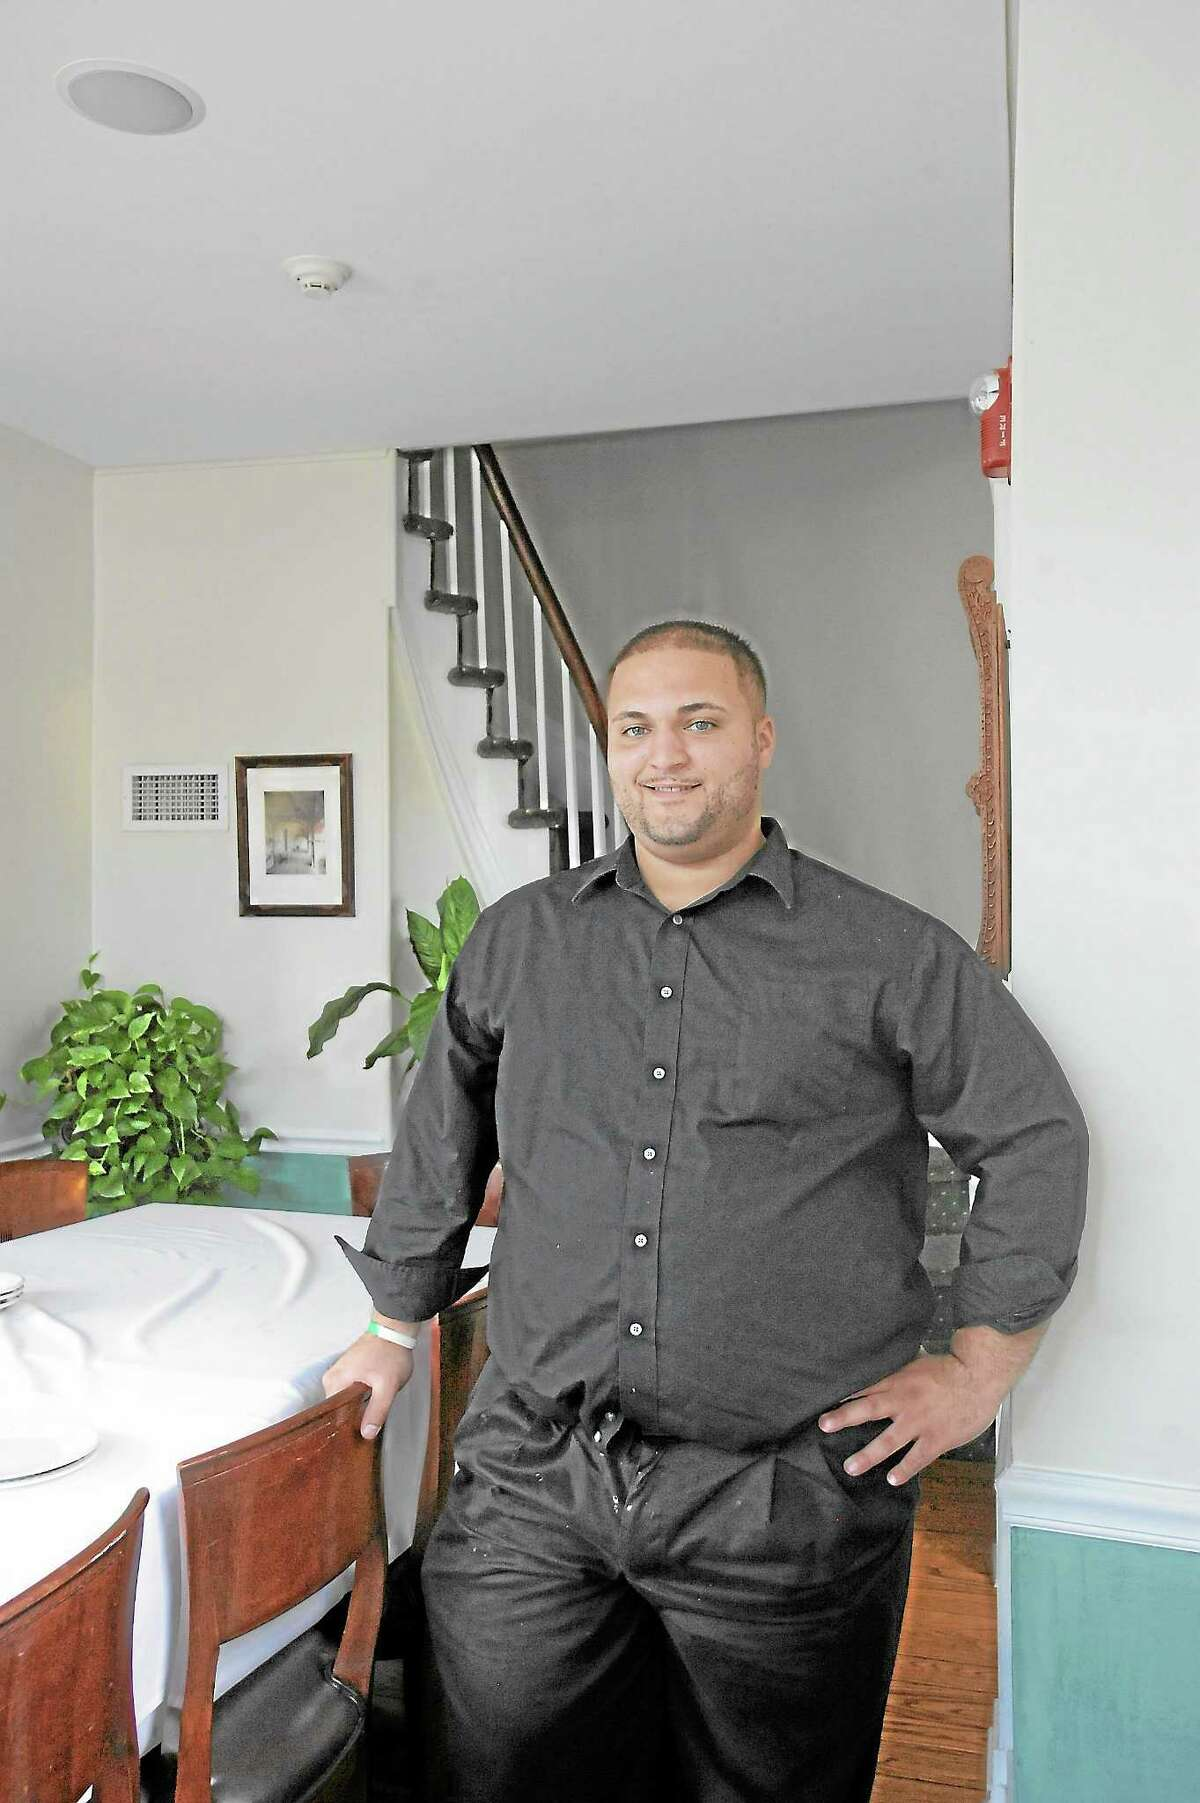 Alexander's Restaurant is in the hands of Alex Halim, a resident of New Milford.